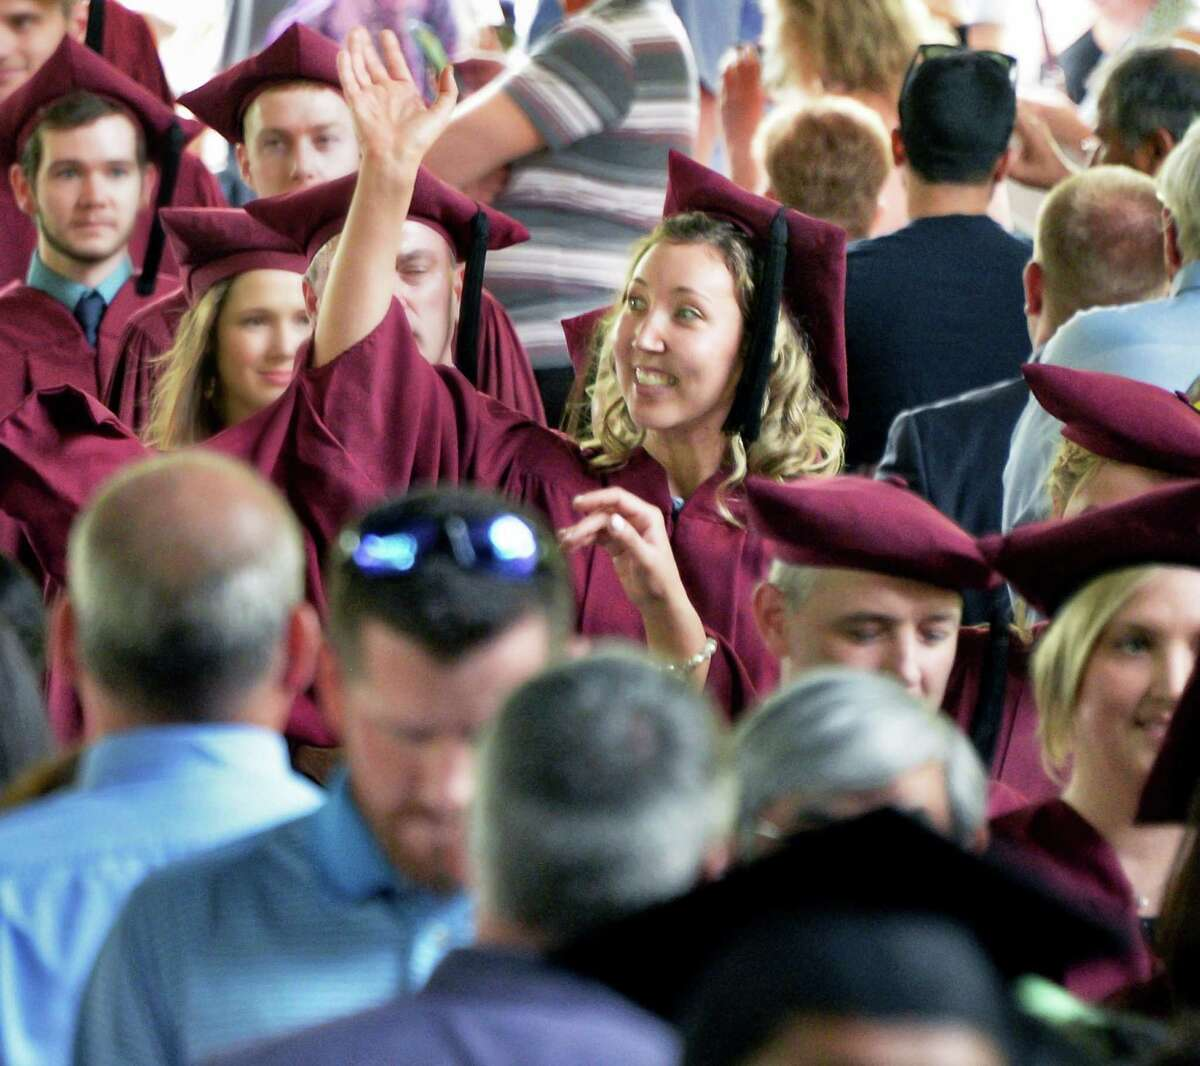 Albany Medical College graduate Madeline Nahow of Cornwall-on-Hudson waves as she enters commencement ceremonies Thursday May 26, 2016 in Saratoga Springs, NY. (John Carl D'Annibale / Times Union)